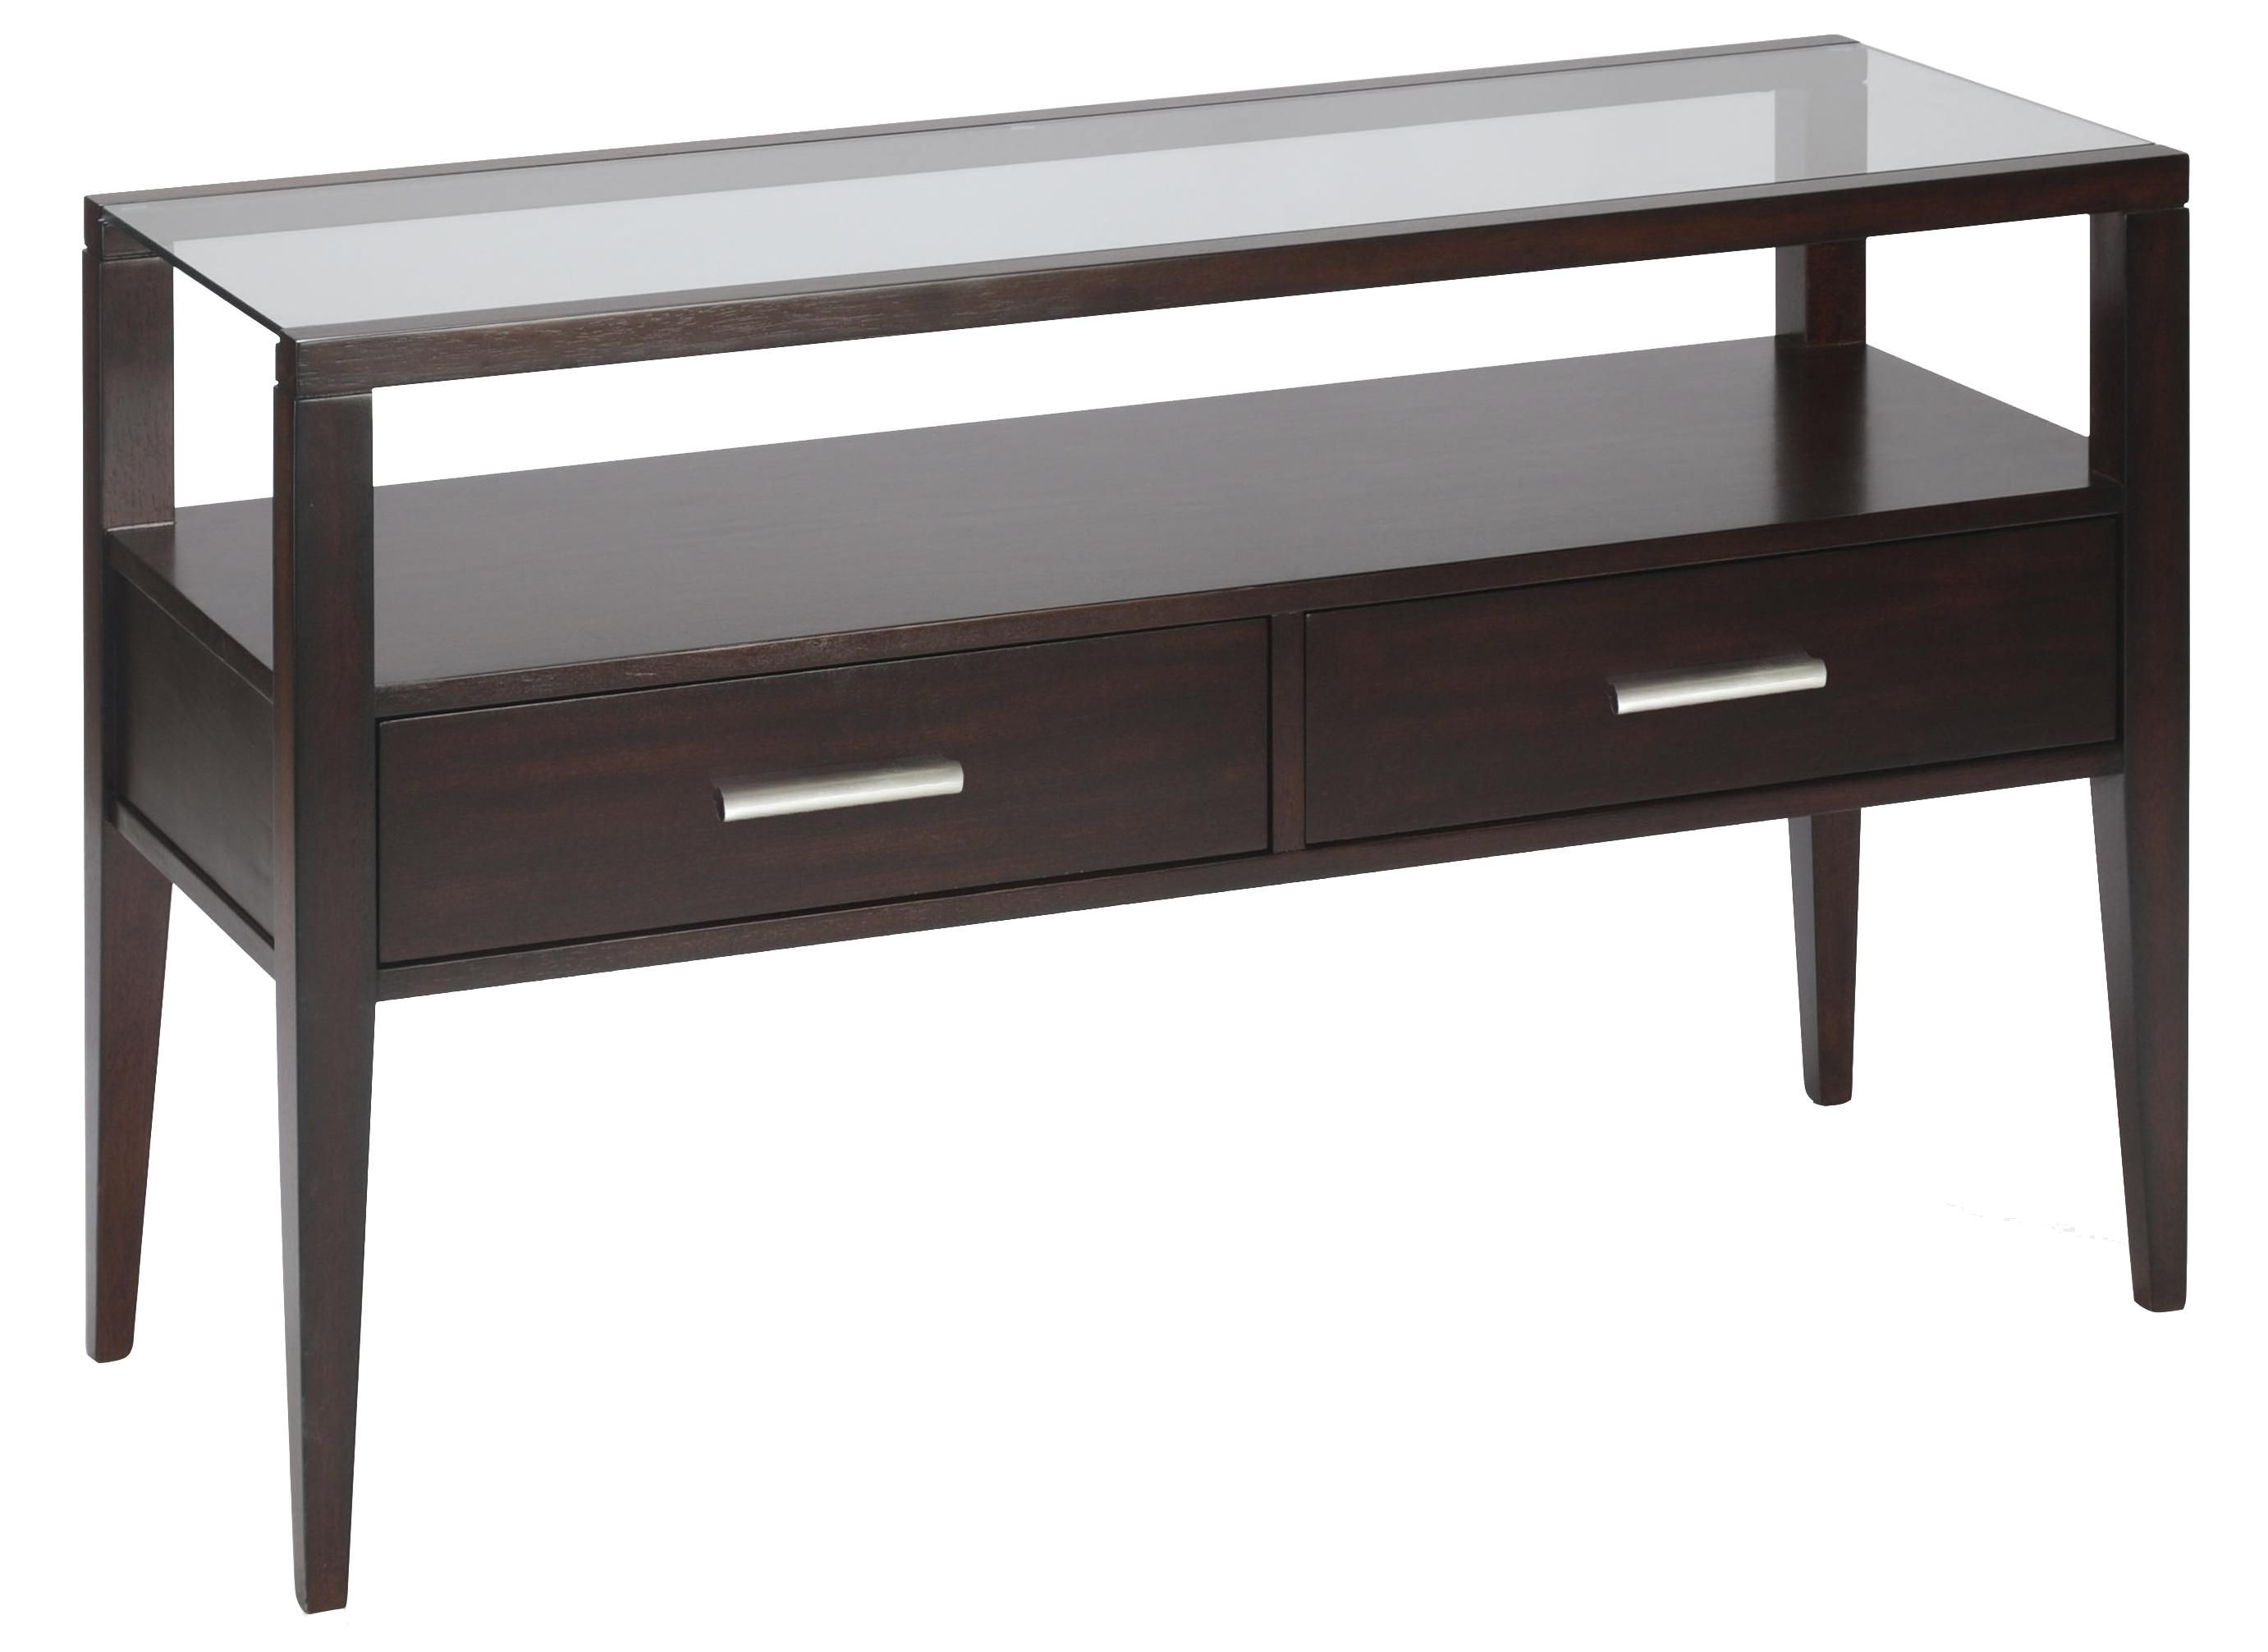 Baker contemporary sofa table with two drawers by magnussen home baker contemporary sofa table with two drawers by magnussen home gardiners furniture sofa table geotapseo Gallery